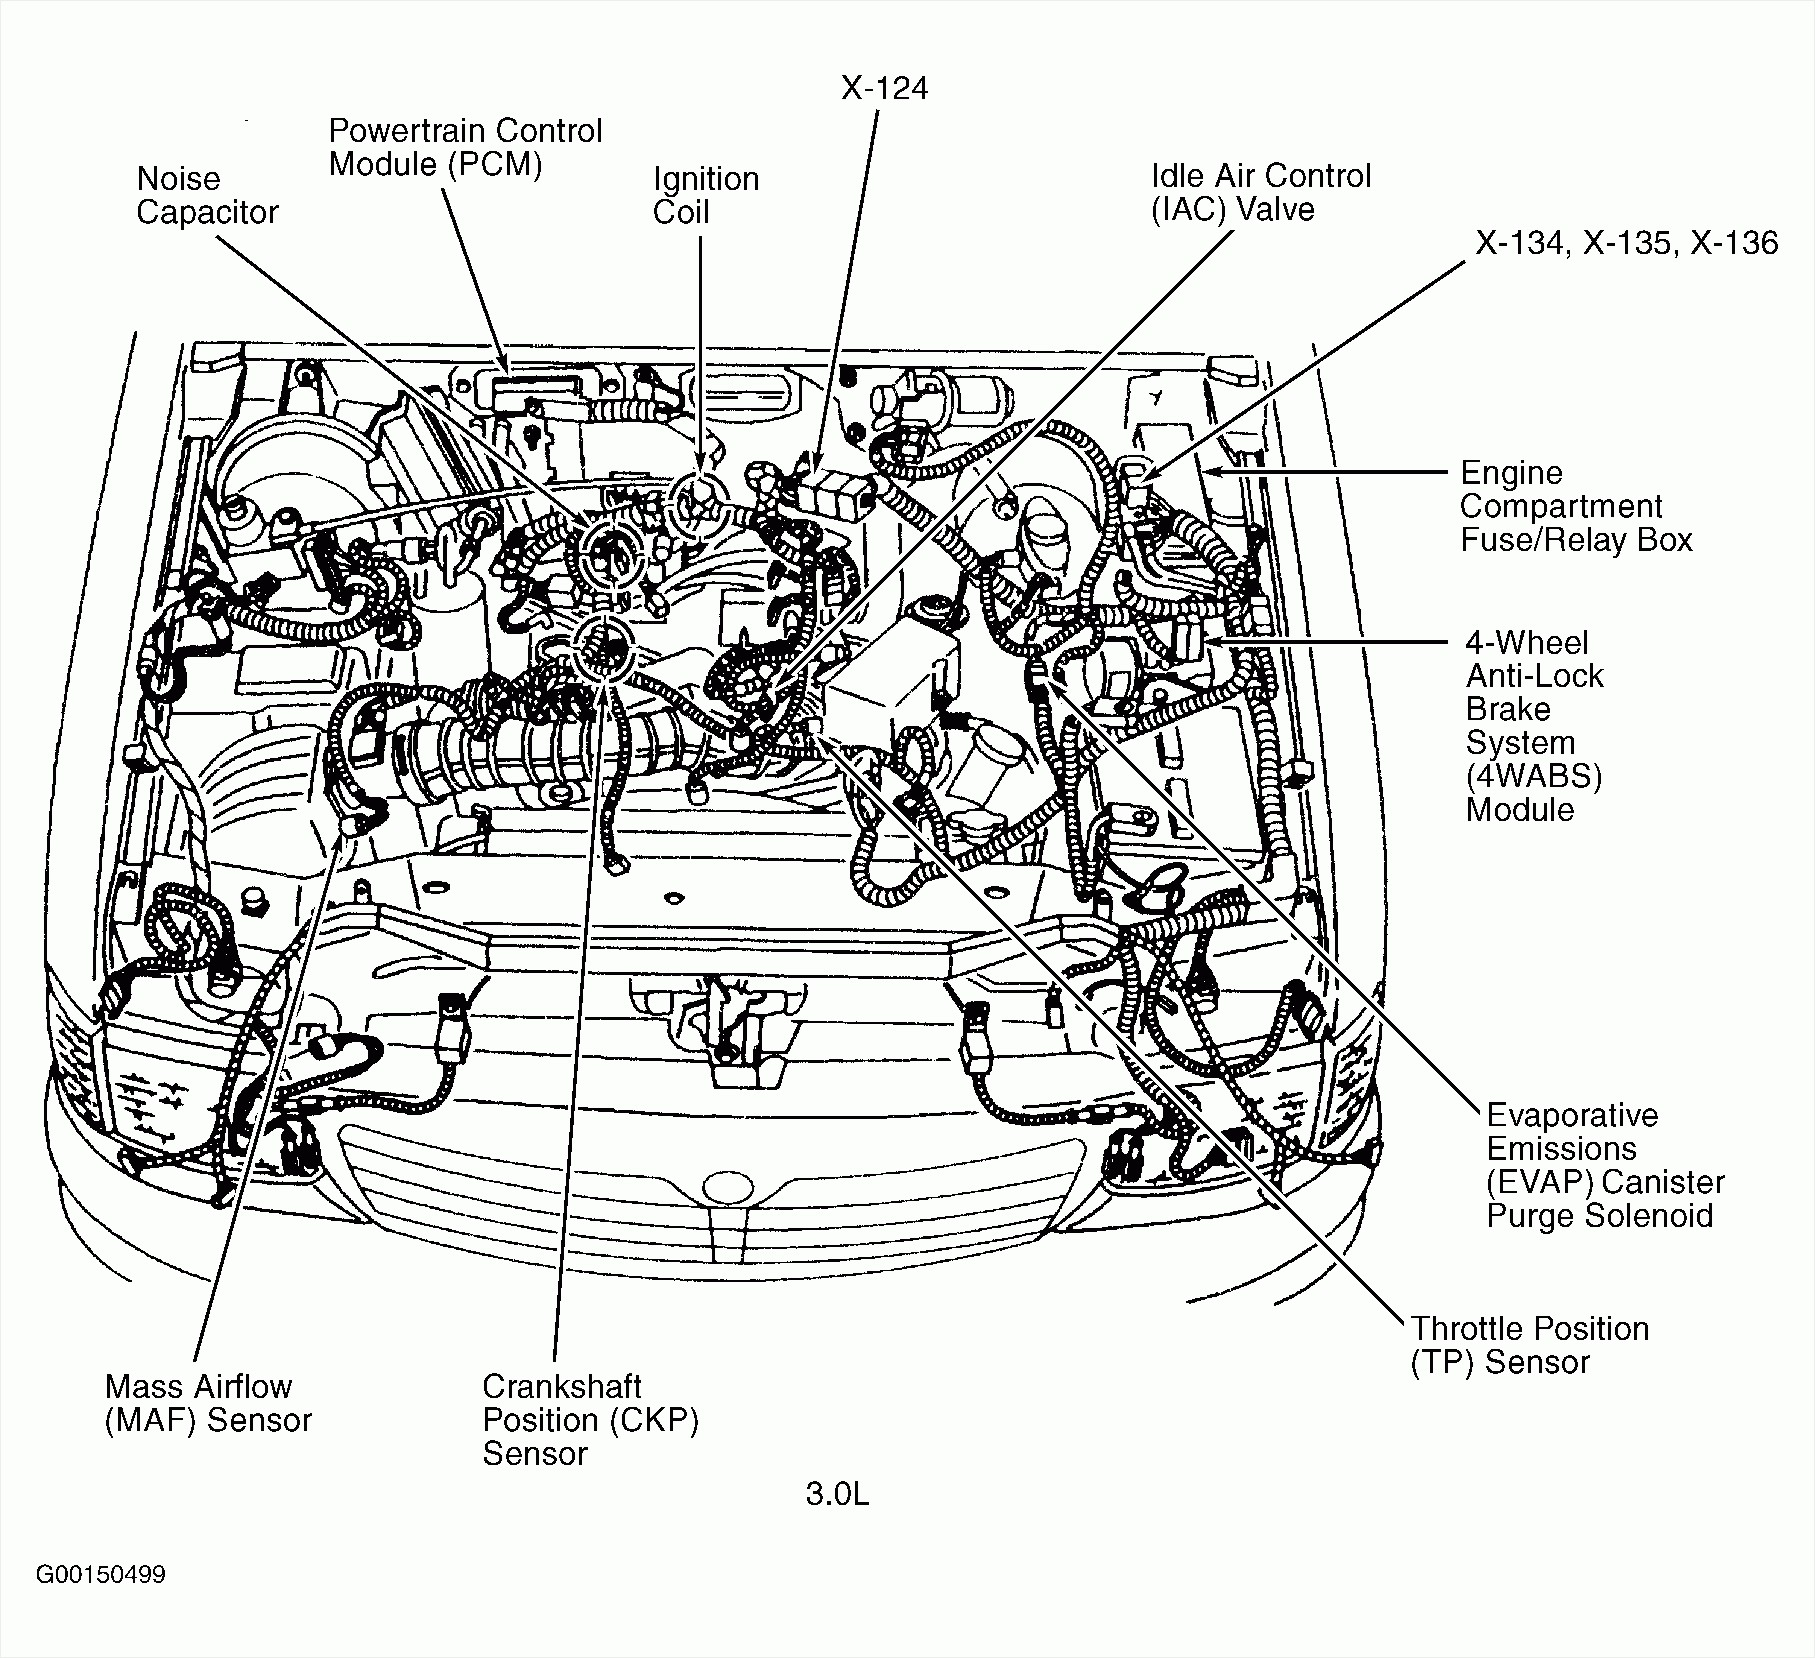 hight resolution of 1999 volkswagen jetta engine diagram wiring diagram show 1999 jetta engine diagram 1999 jetta engine diagram